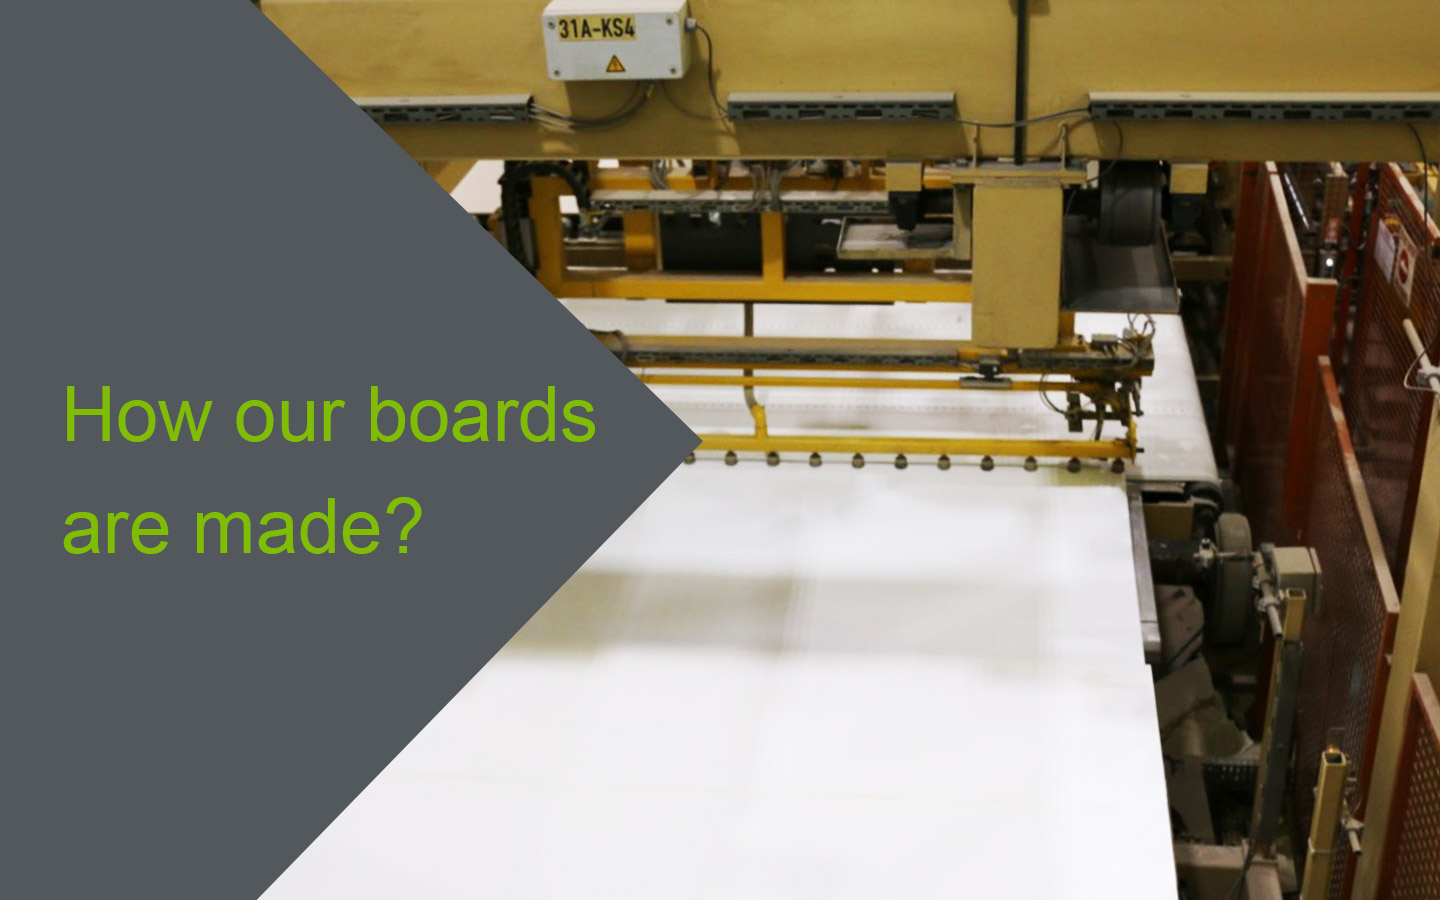 How our boards are made